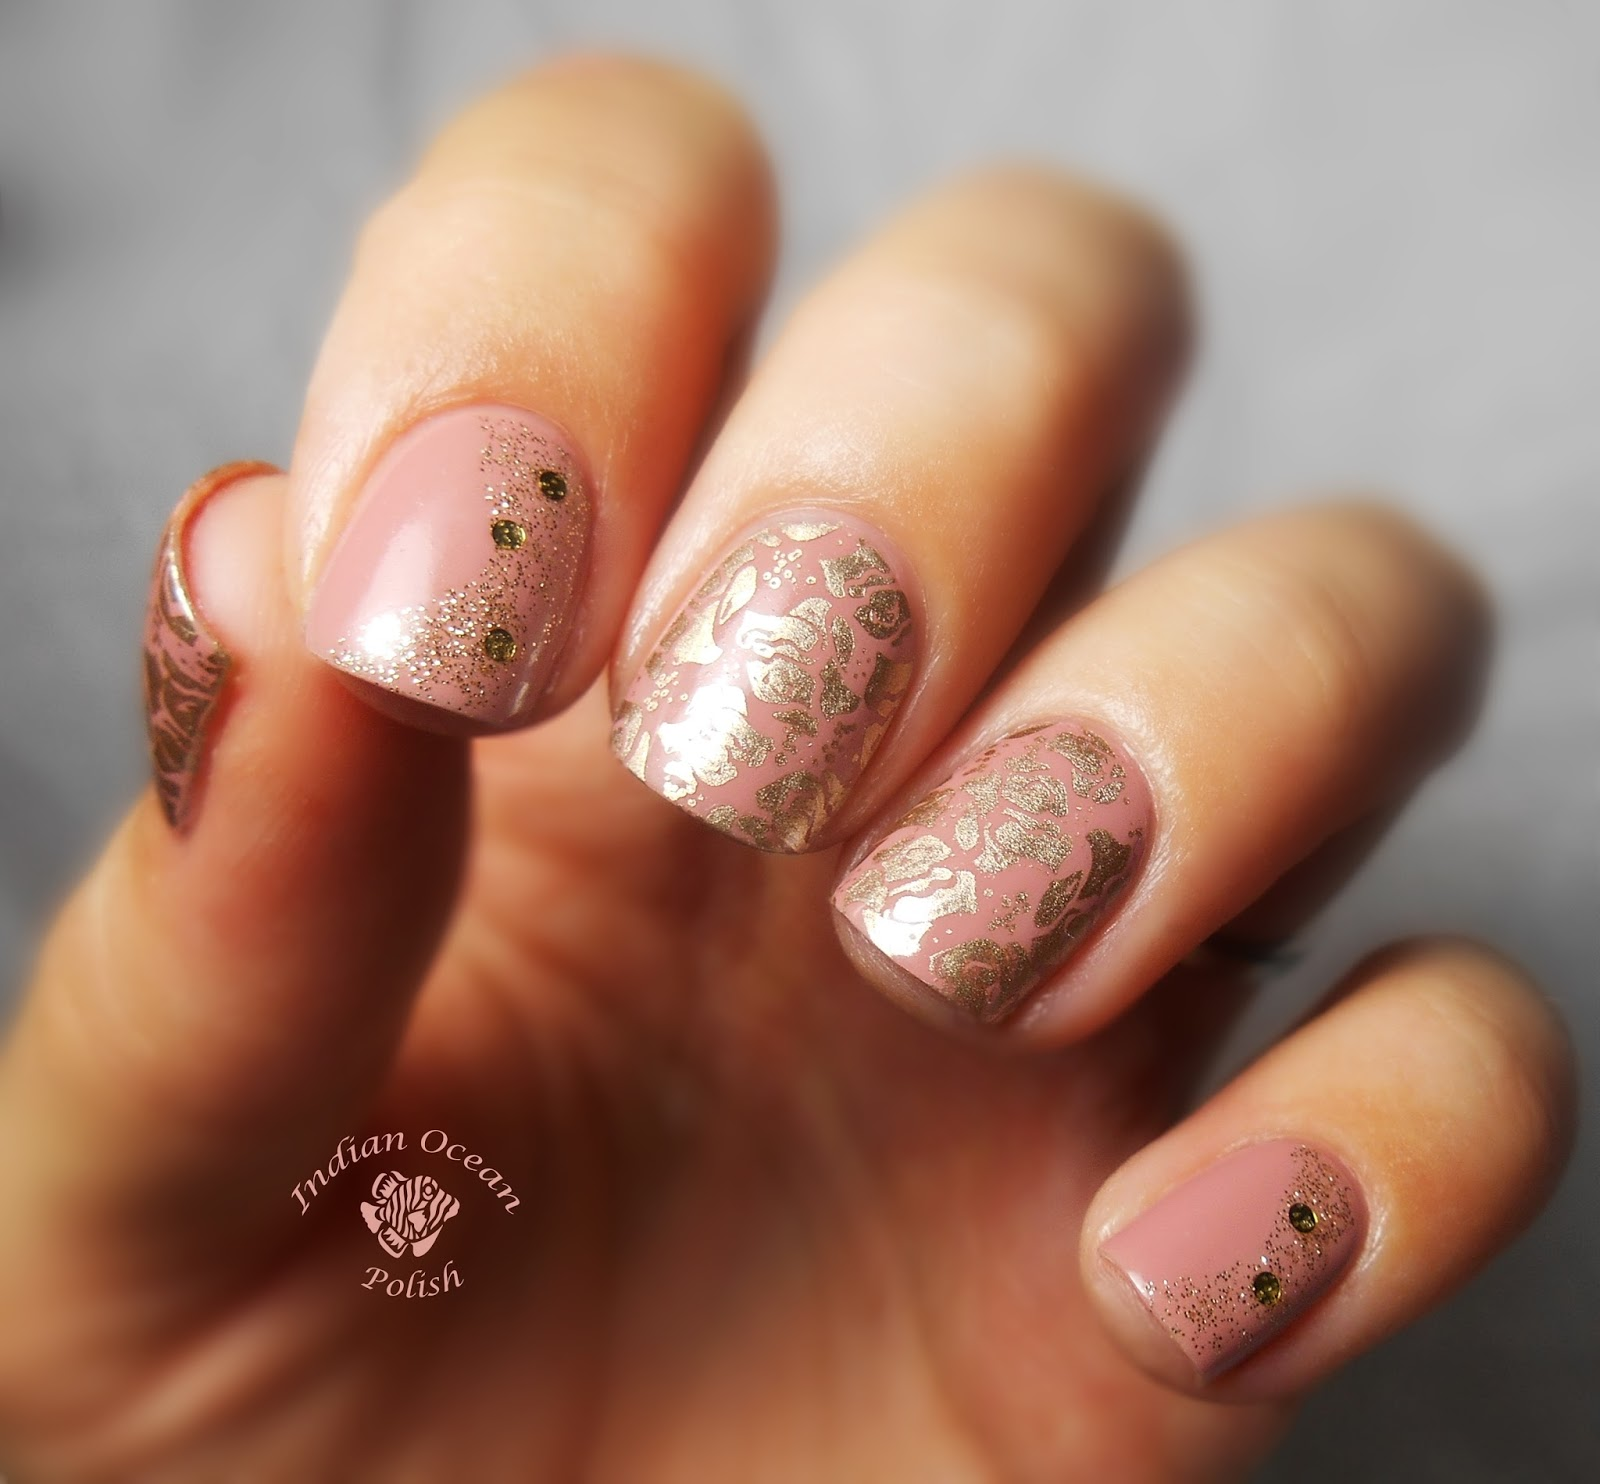 Indian ocean polish pink gold and rose nails thanks for reading prinsesfo Choice Image